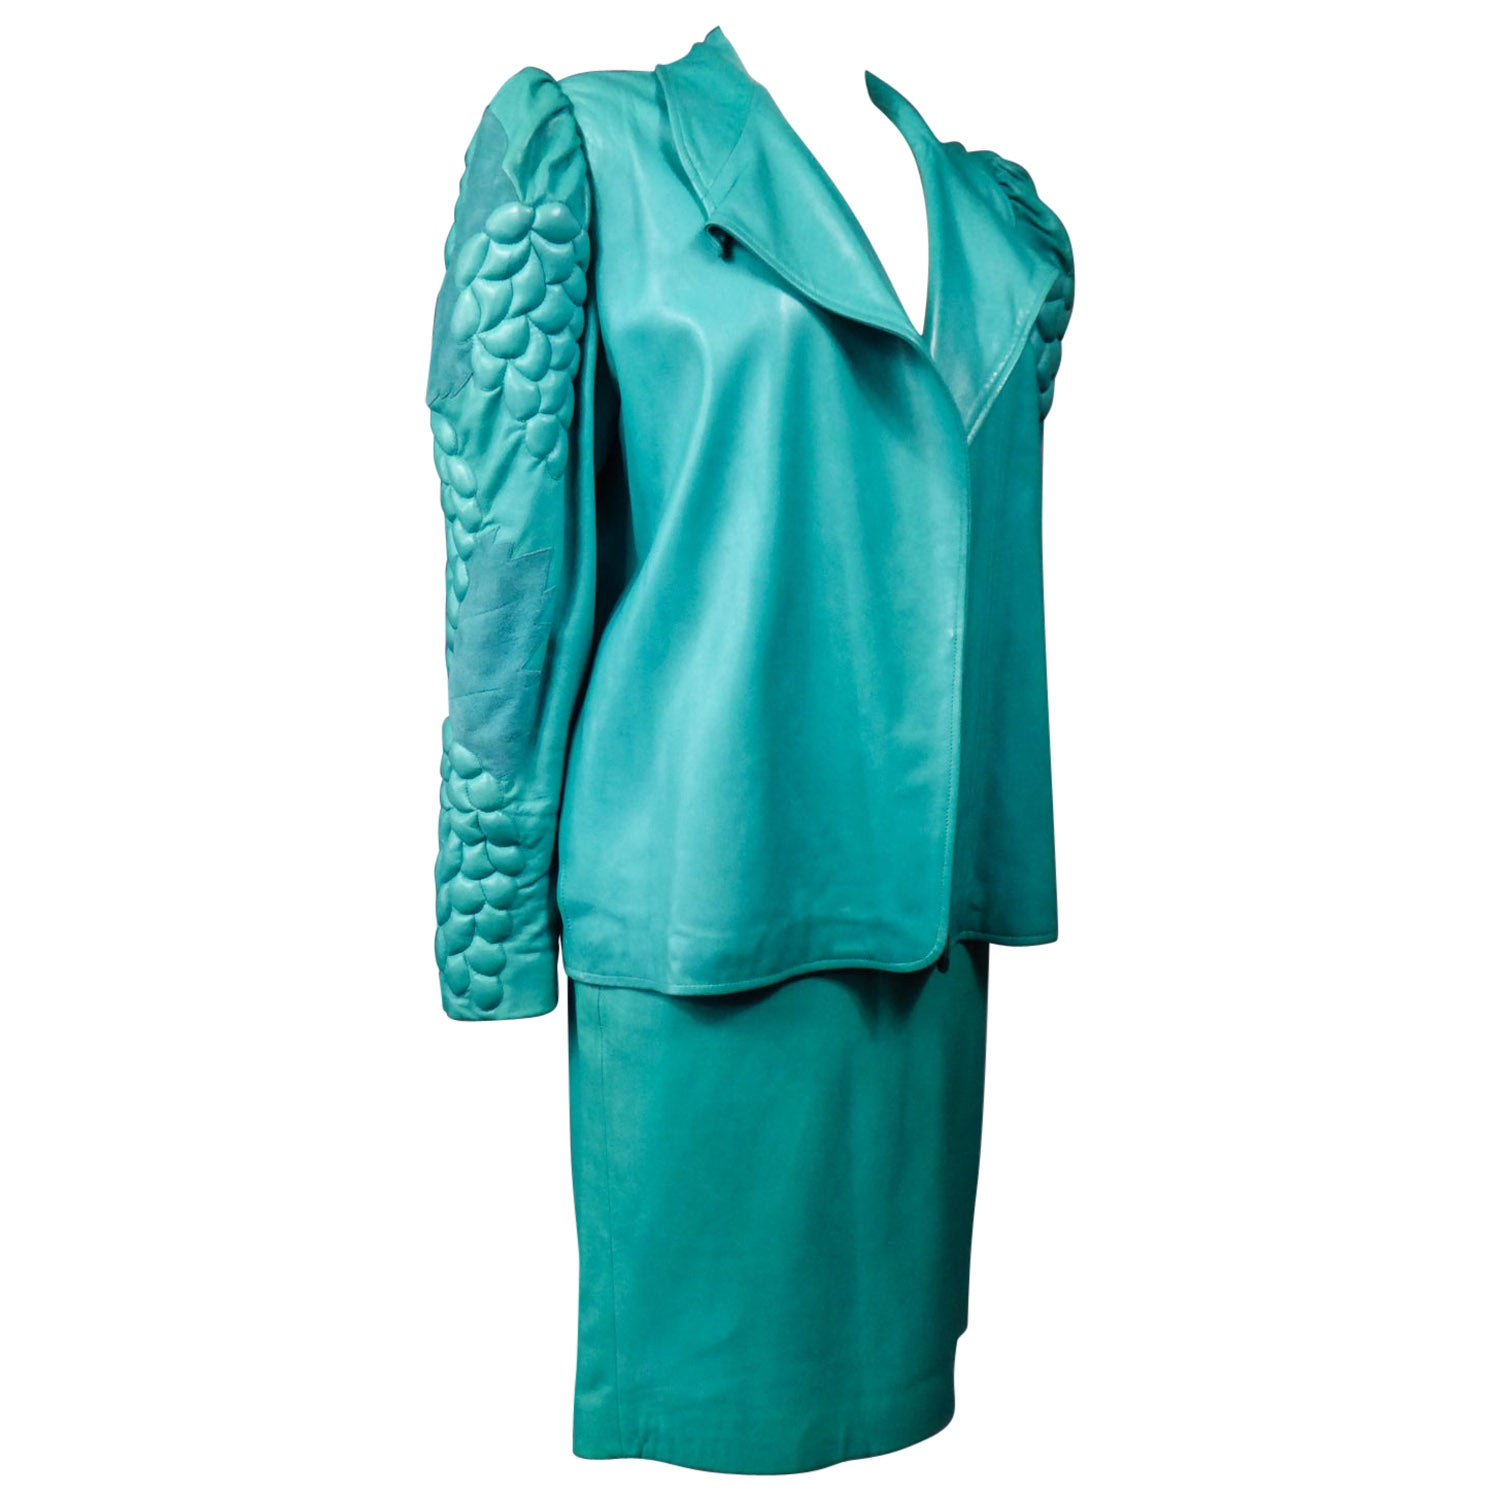 Jean-Claude Jitrois Skirt and Jacket in Turquoise Leather Fall 1985/1986